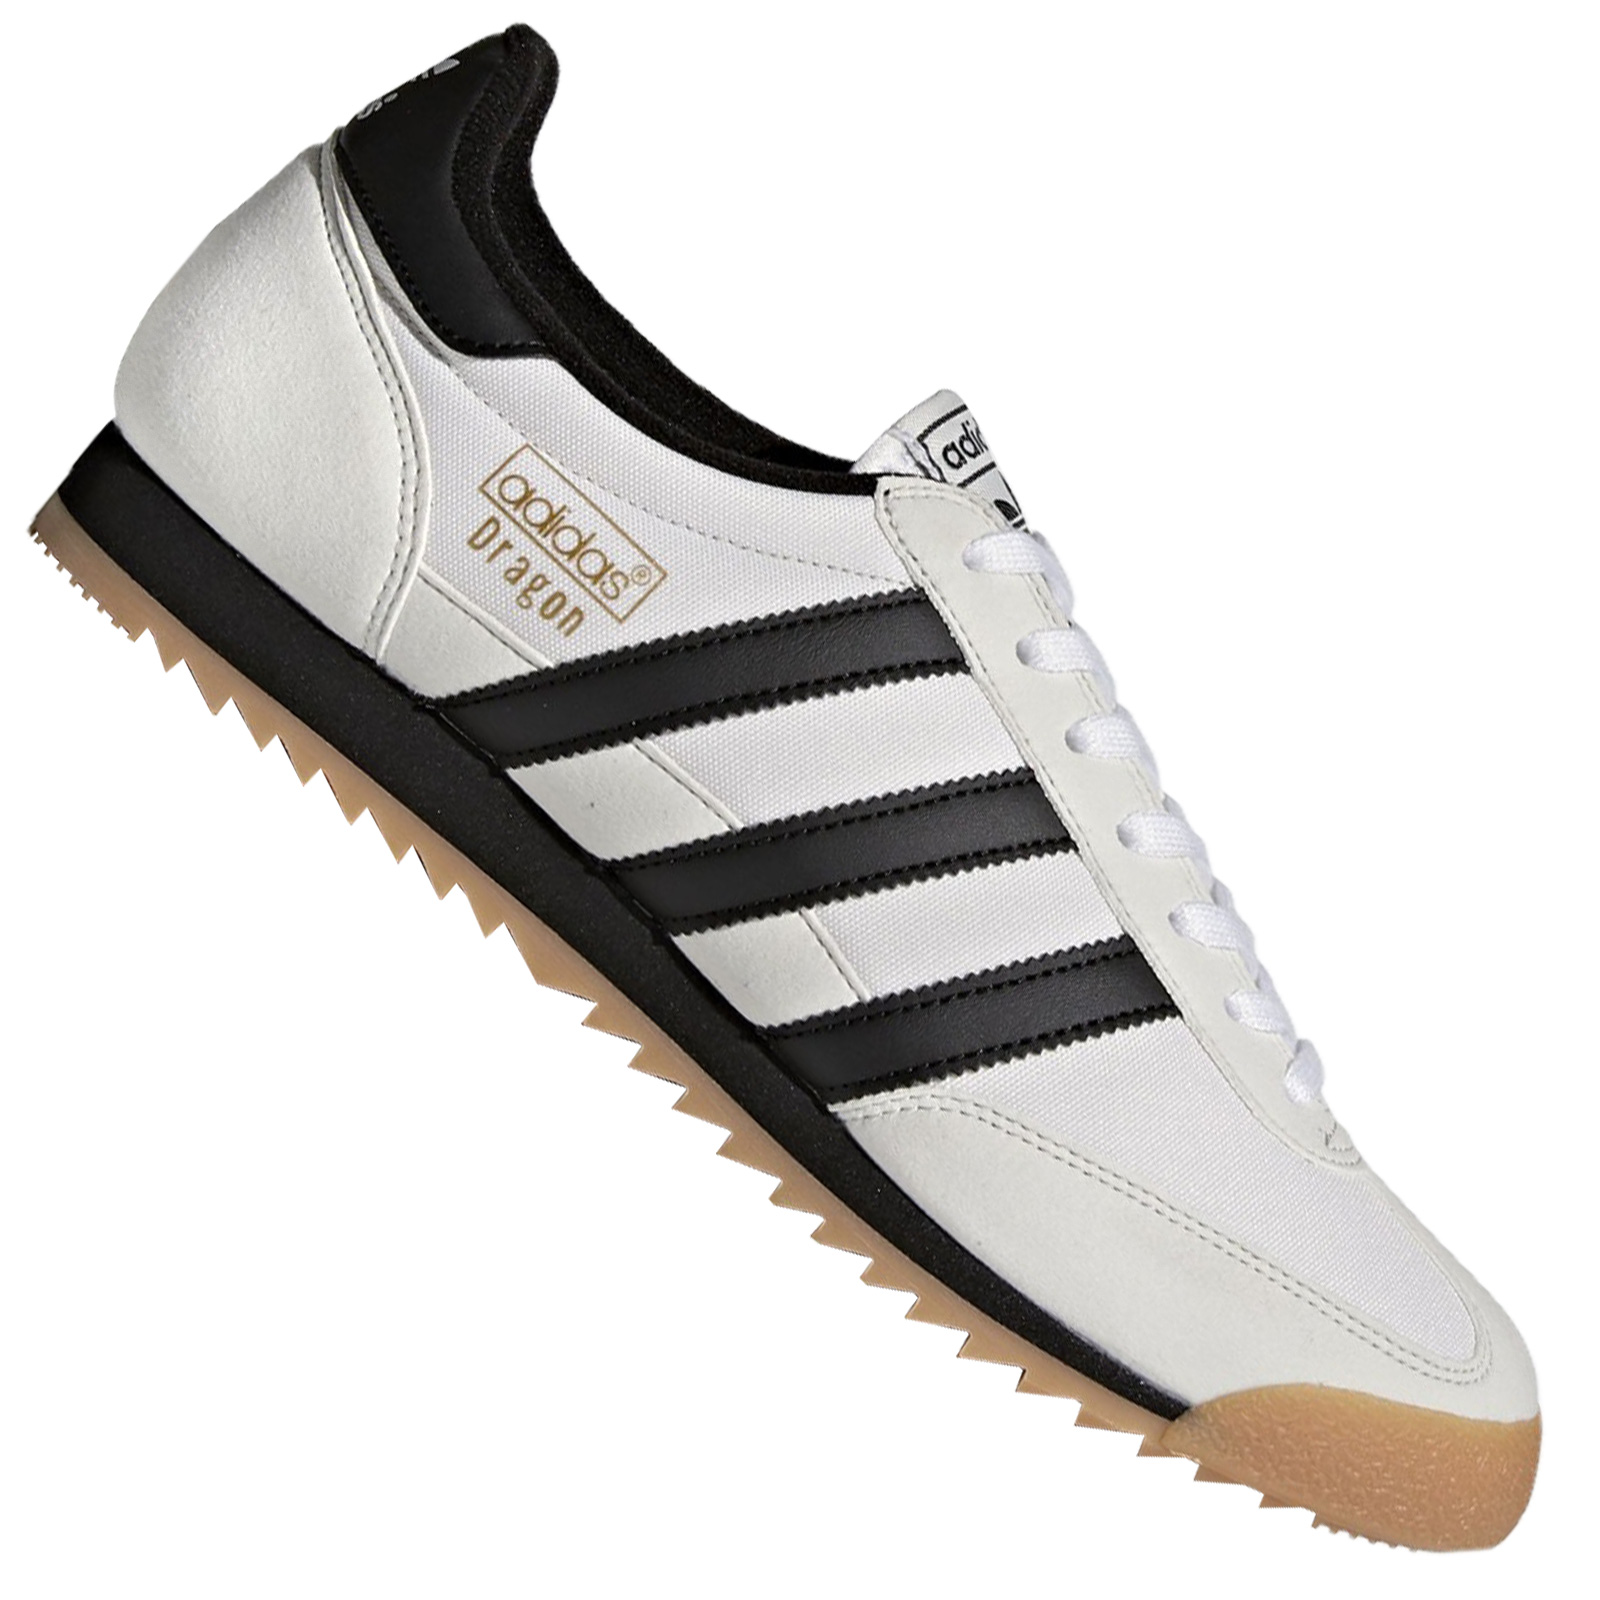 Desconfianza Innecesario Universidad  adidas originals leather shoes Online Shopping for Women, Men, Kids Fashion  & Lifestyle|Free Delivery & Returns! -